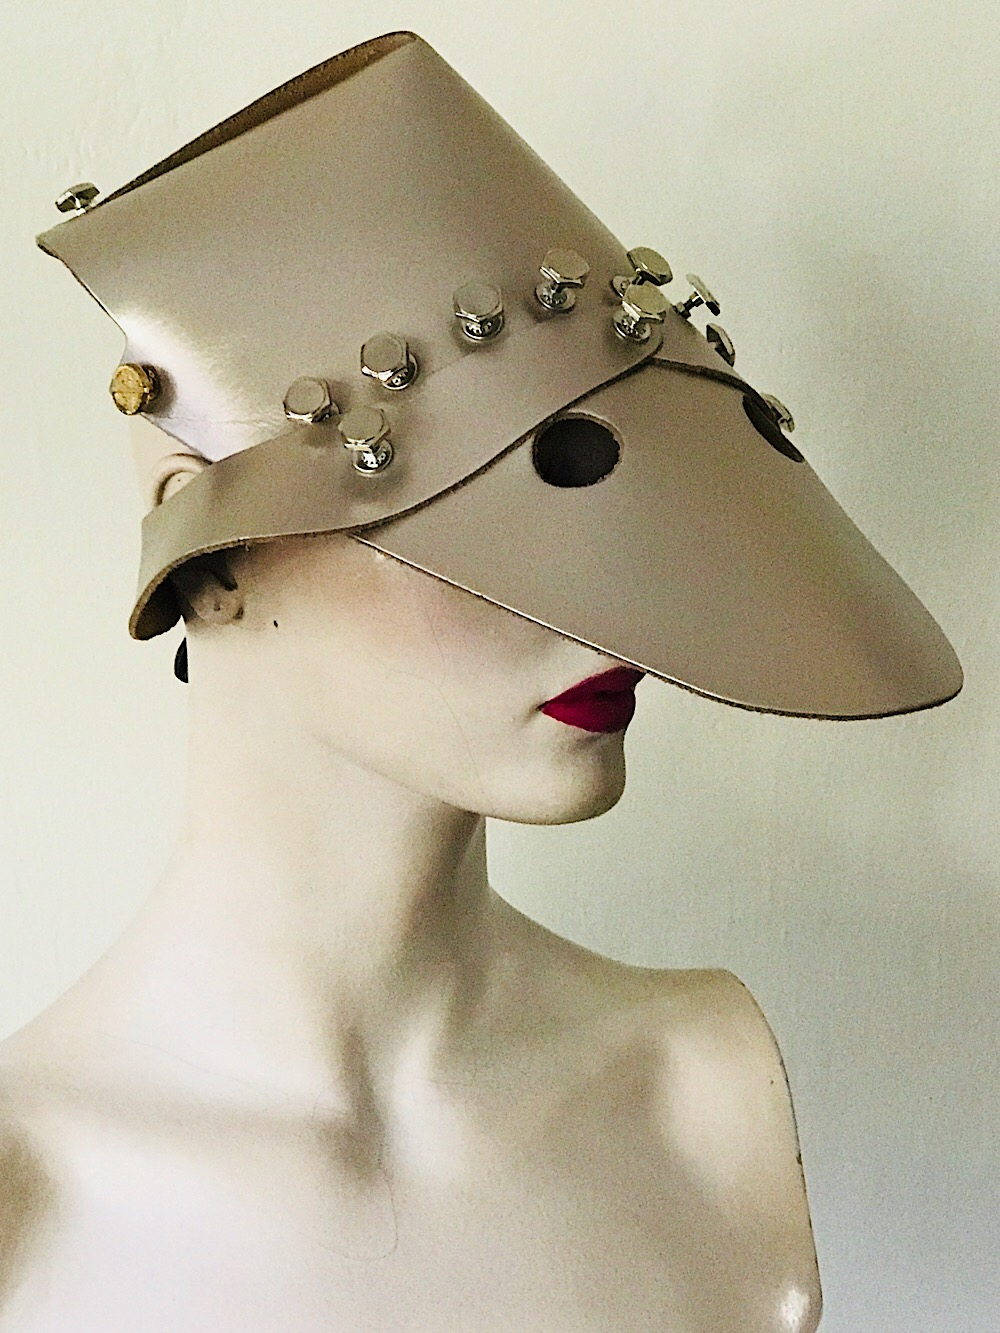 Platinum gold metallic leather hat head wear for costume styling statement